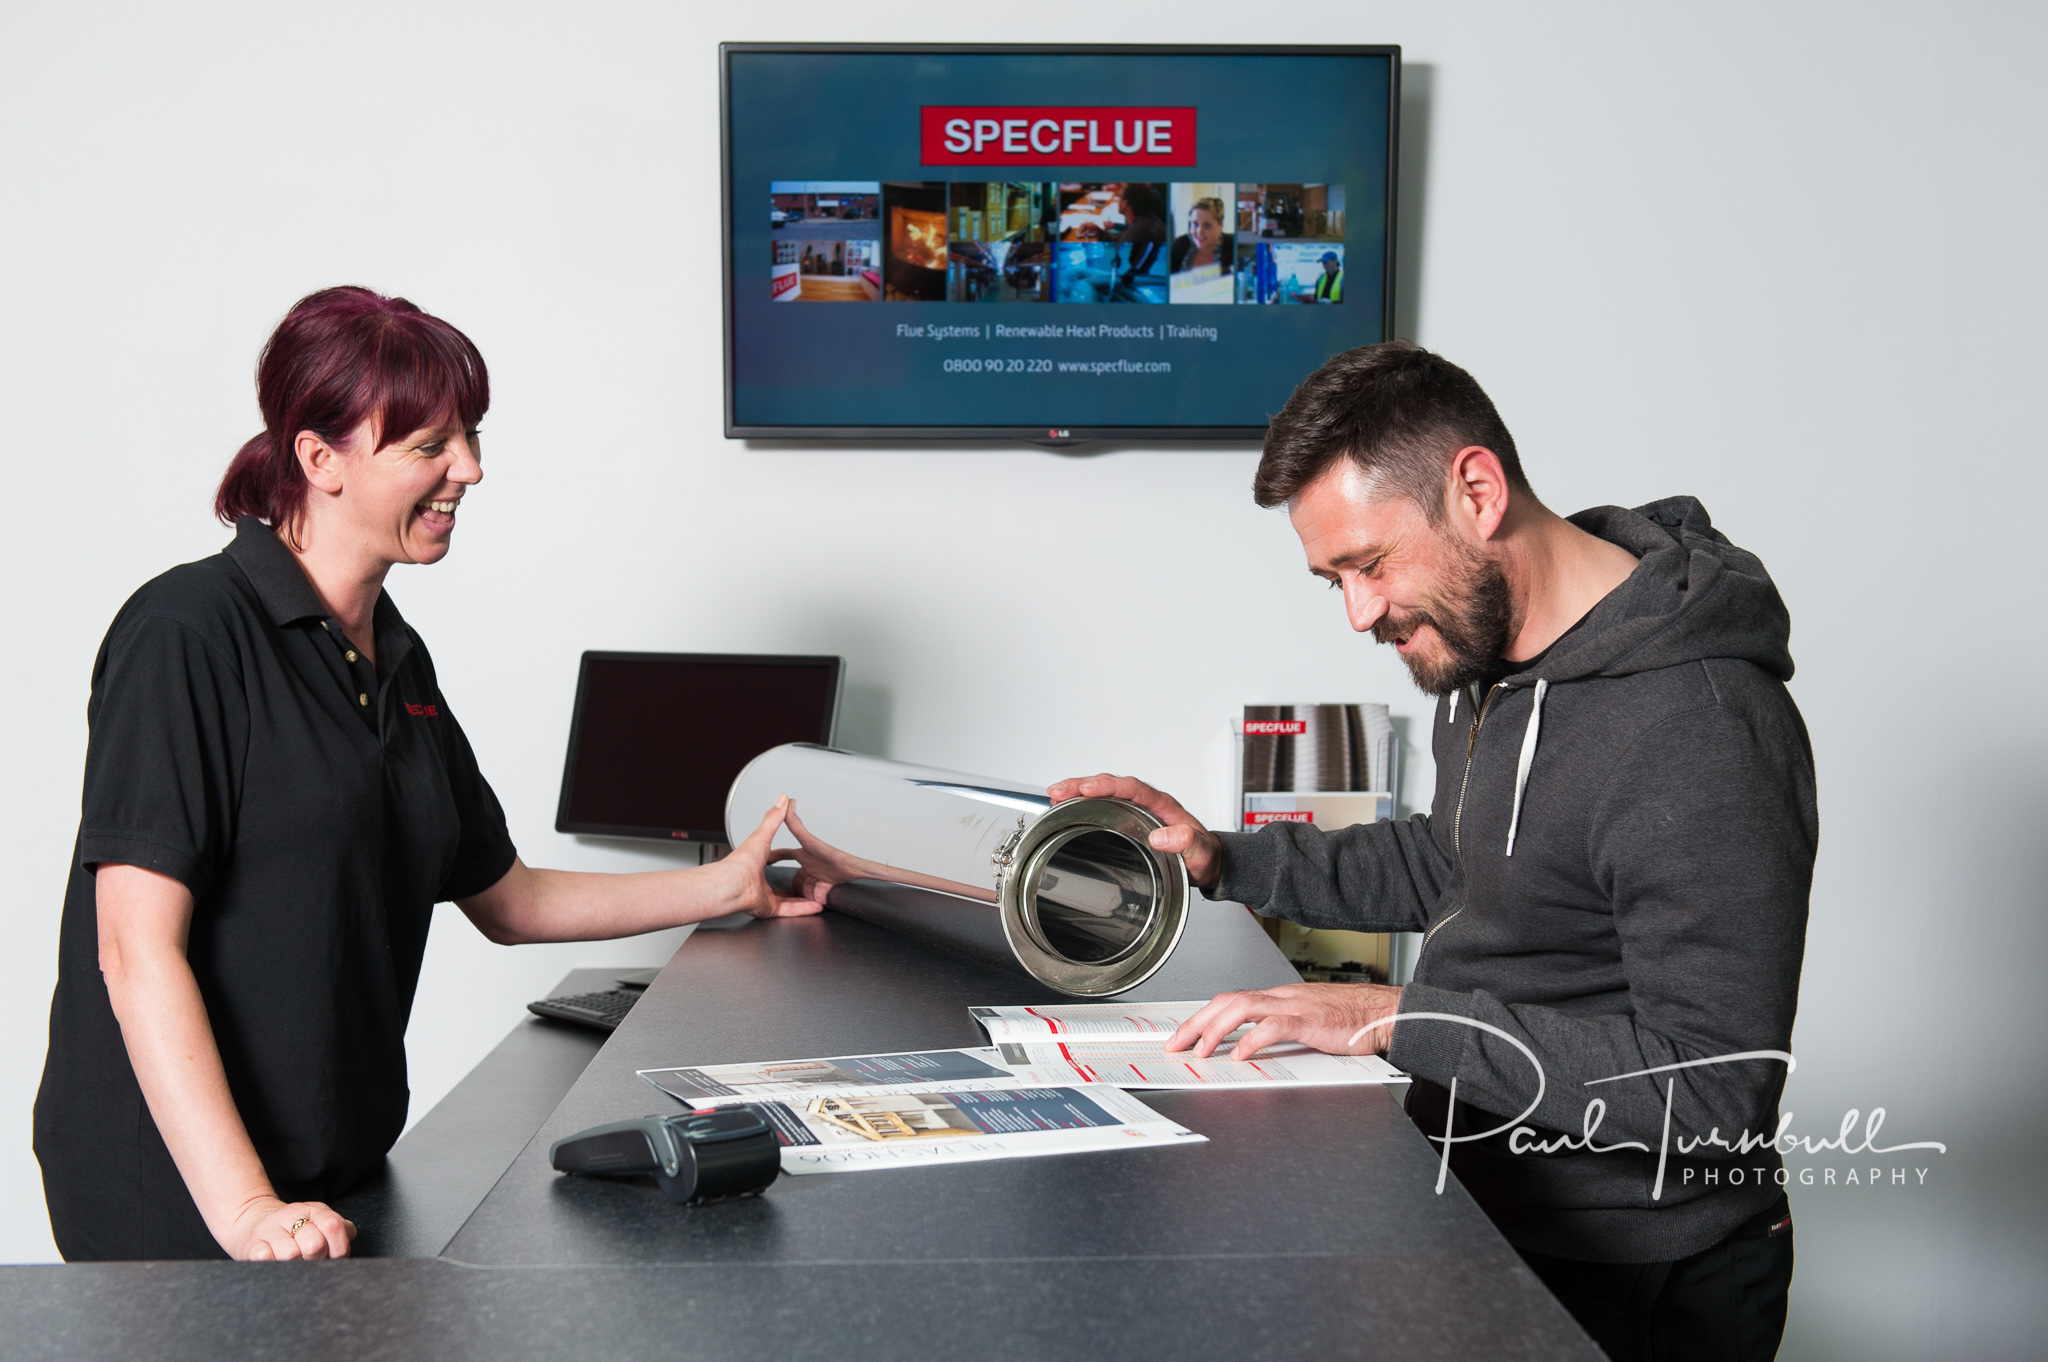 commercial-pr-photographer-leeds-yorkshire-specflue-009.jpg